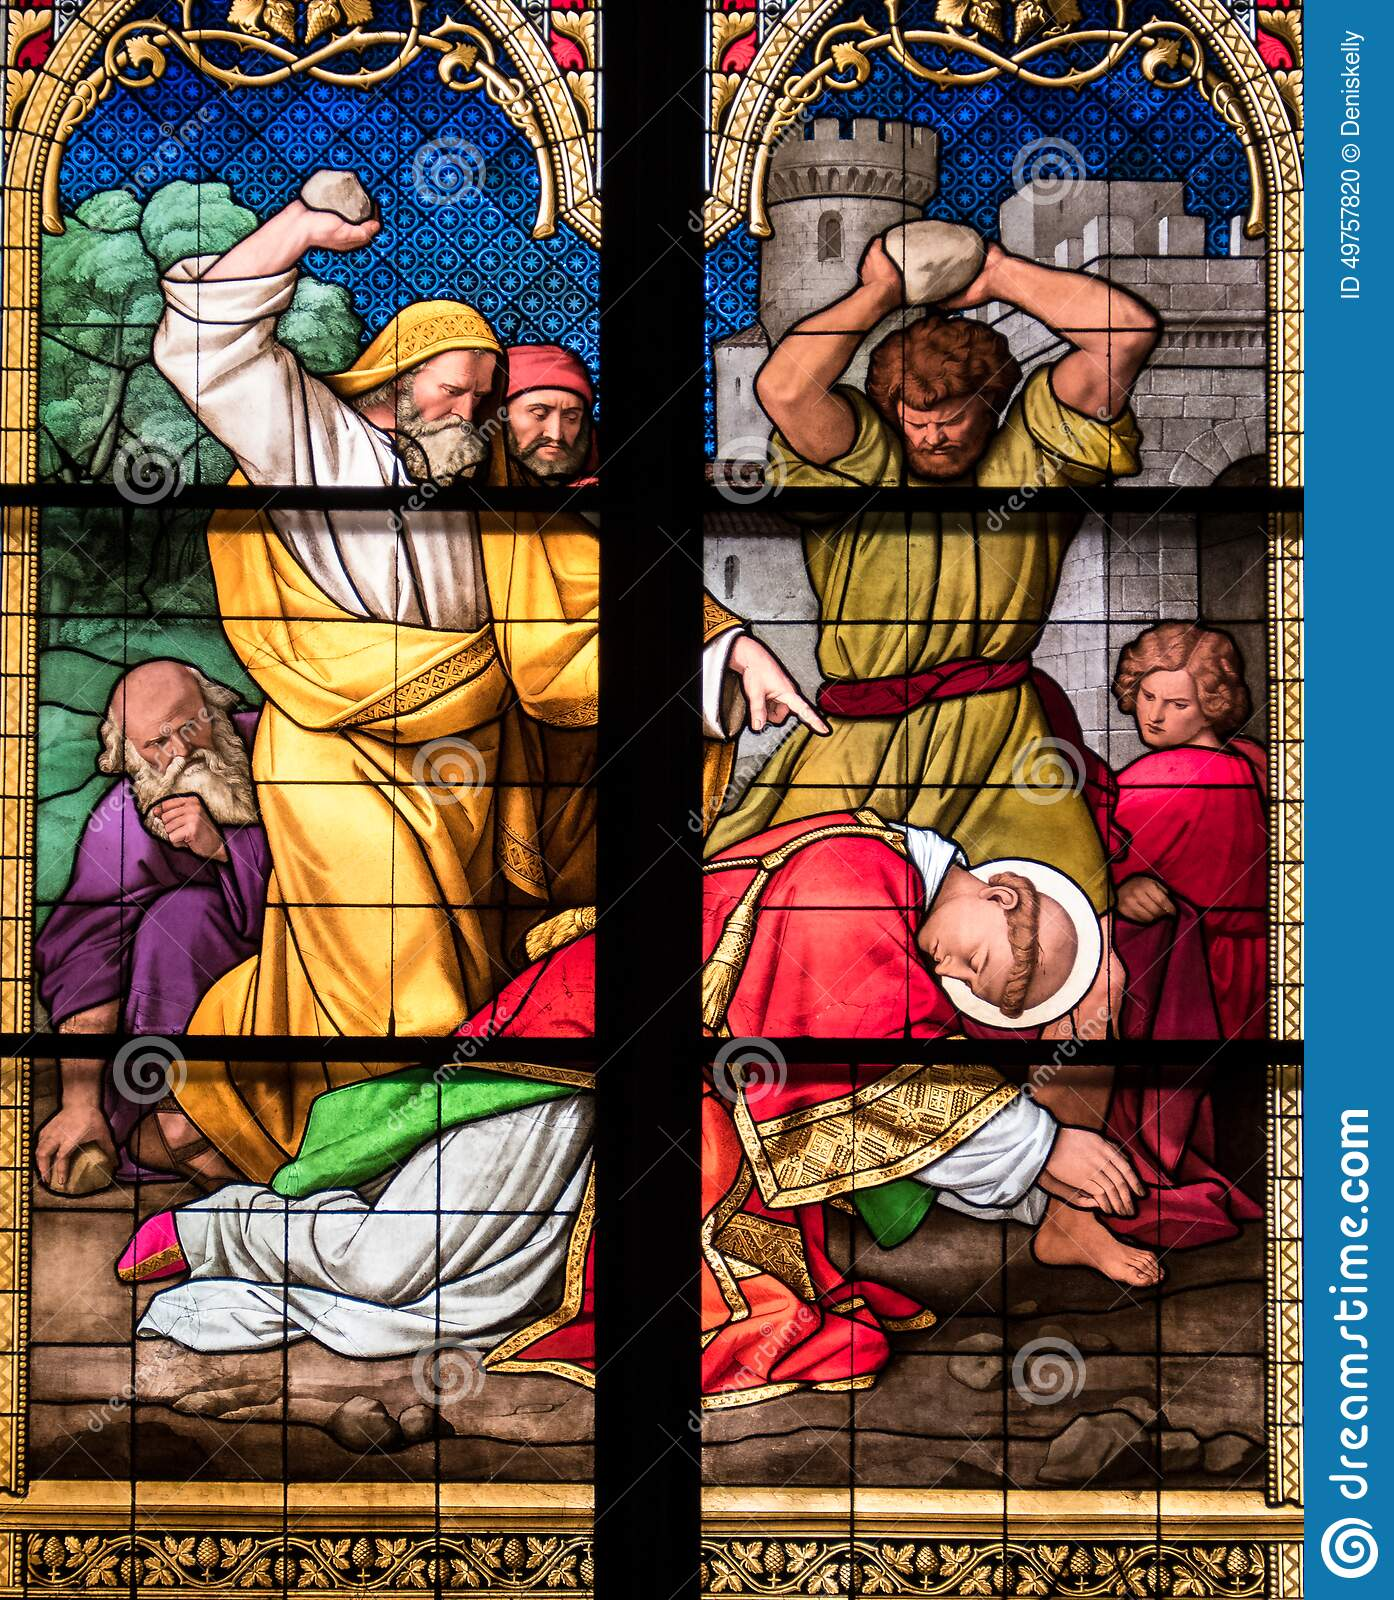 https://thumbs.dreamstime.com/z/stoning-saint-stephen-detail-stained-glass-window-depicting-to-death-cologne-cathedral-north-rhine-westphalia-germany-49757820.jpg